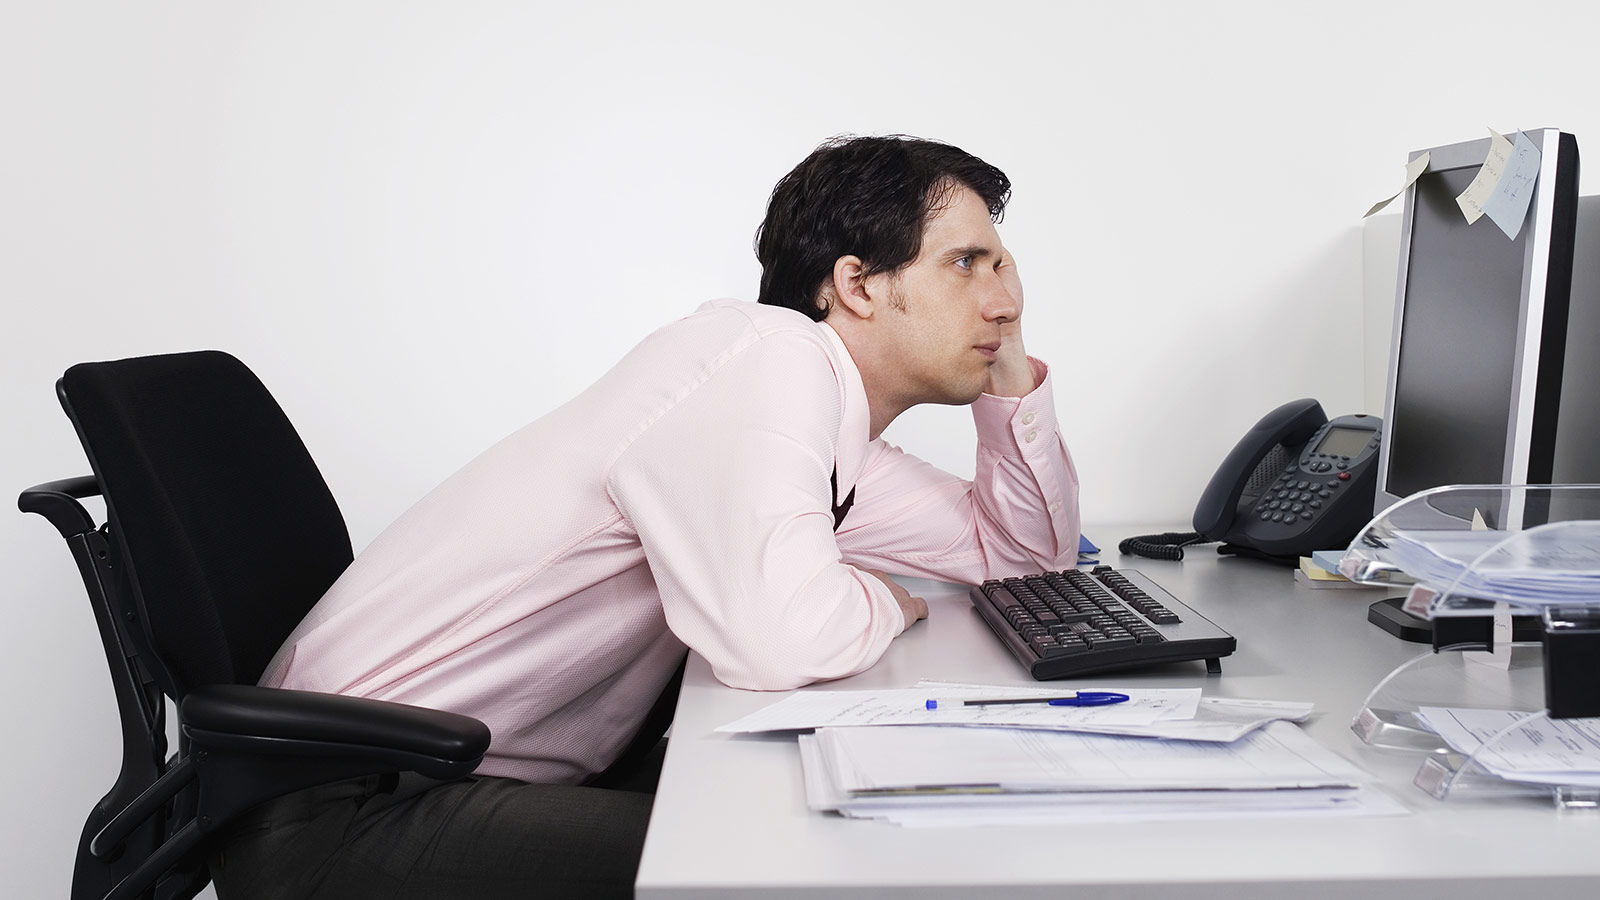 Prolonged sitting estimated to kill 70,000 in the UK a year